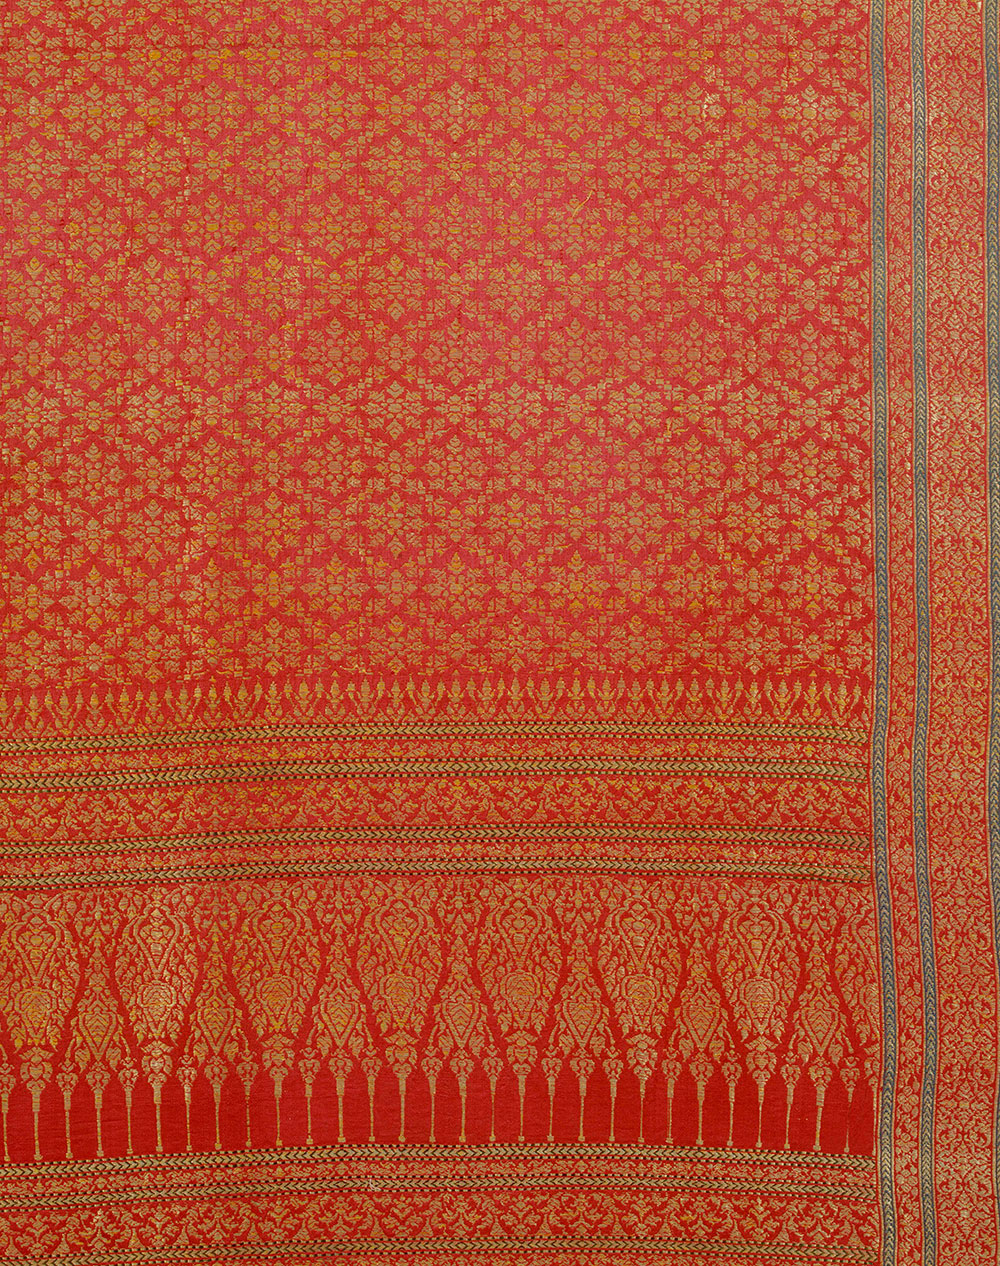 Ceremonial cloth woven silk and gold-wrapped thread Gujarat for the Thai market 19th century, Victoria and Albert Museum, London